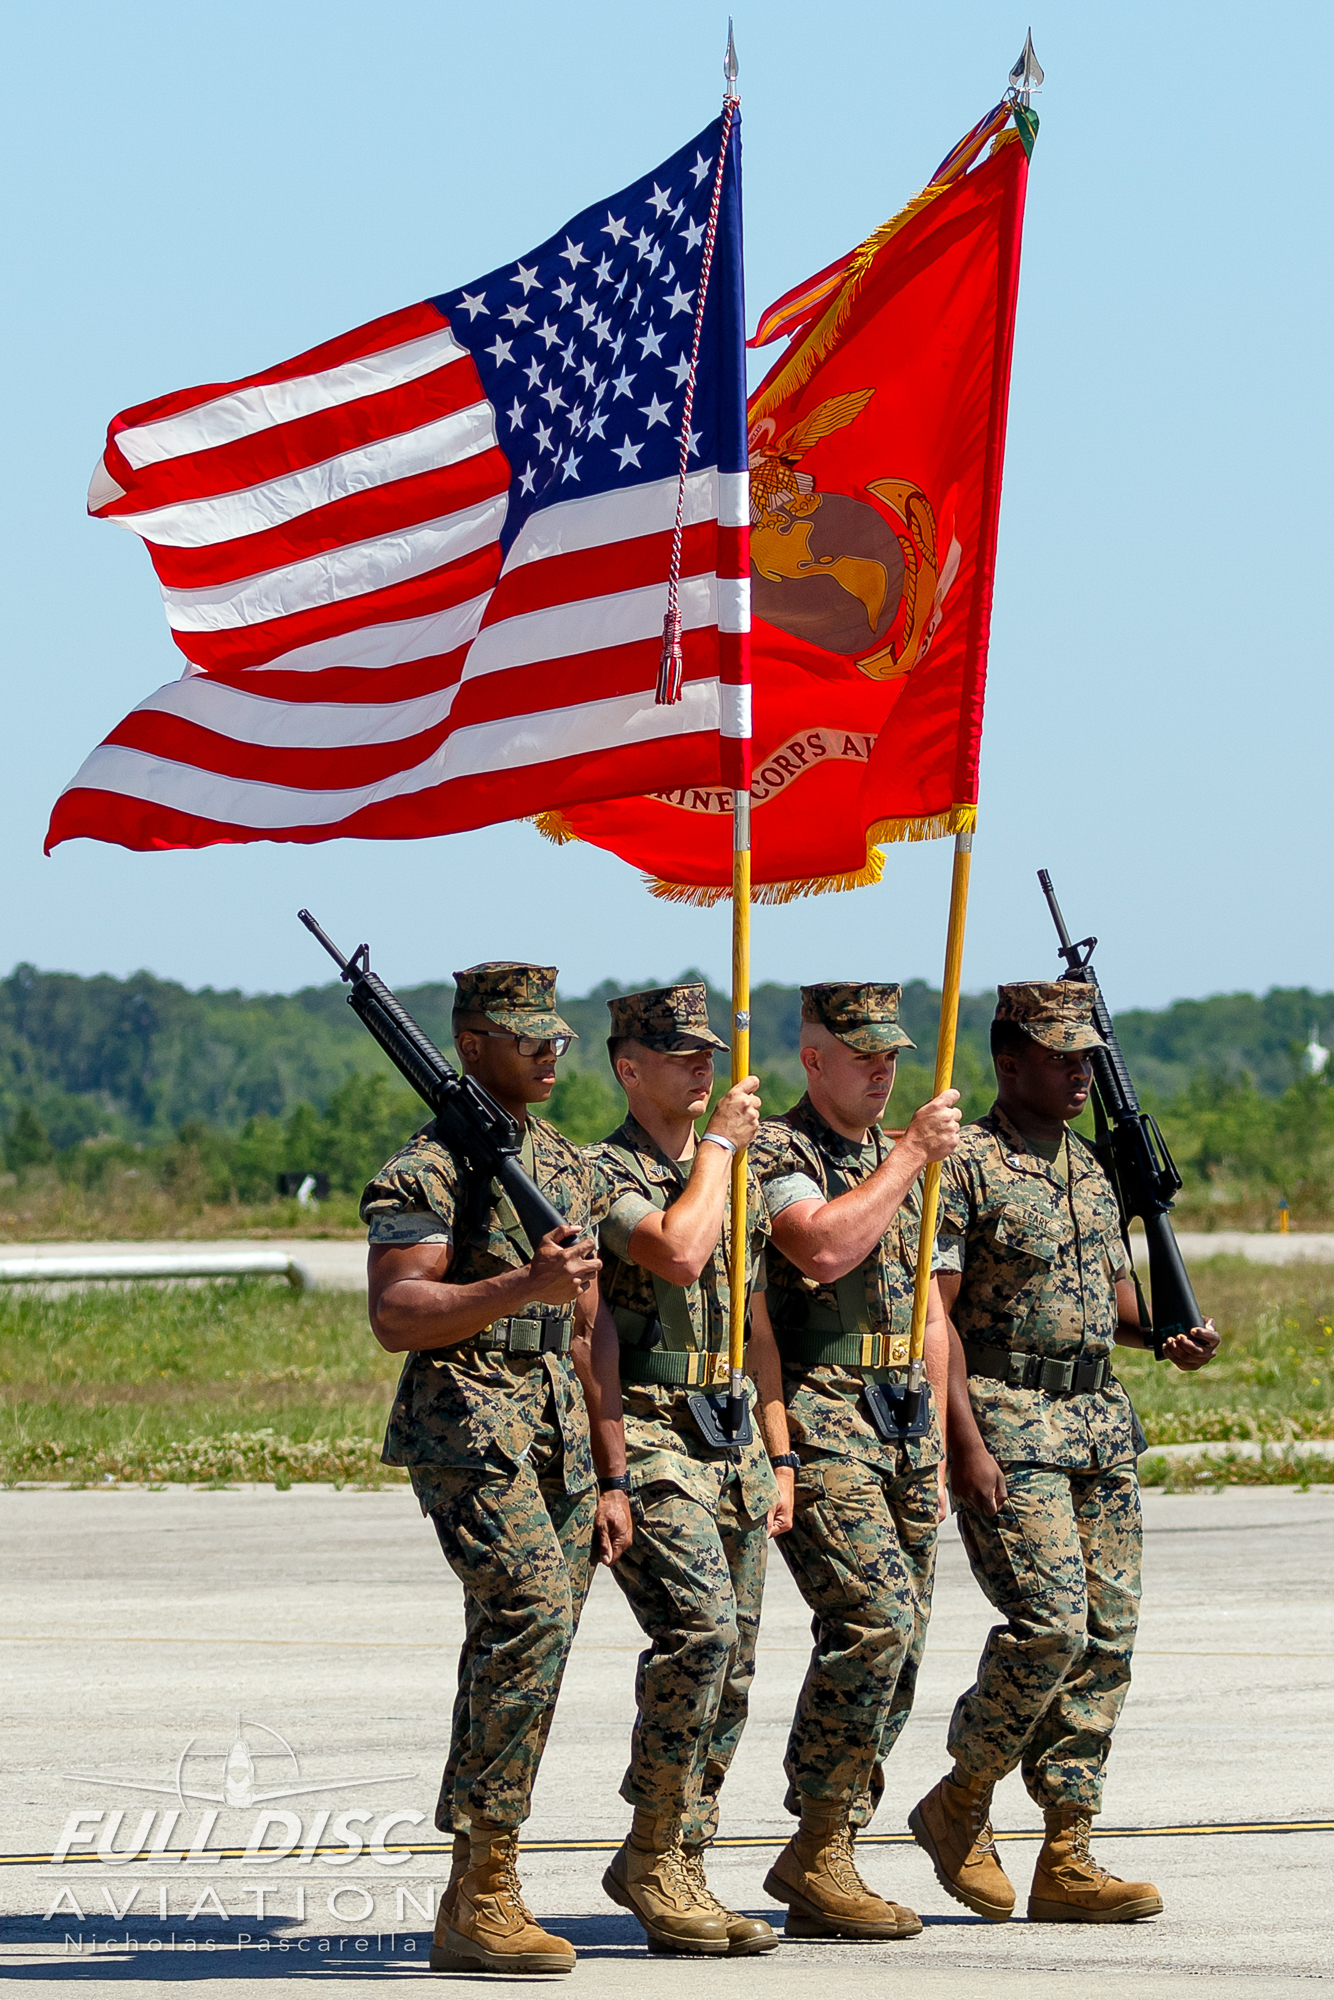 marines_colors_marching_mcasbeaufort_nicholaspascarella_fulldiscavation_aviation_airshow.jpg